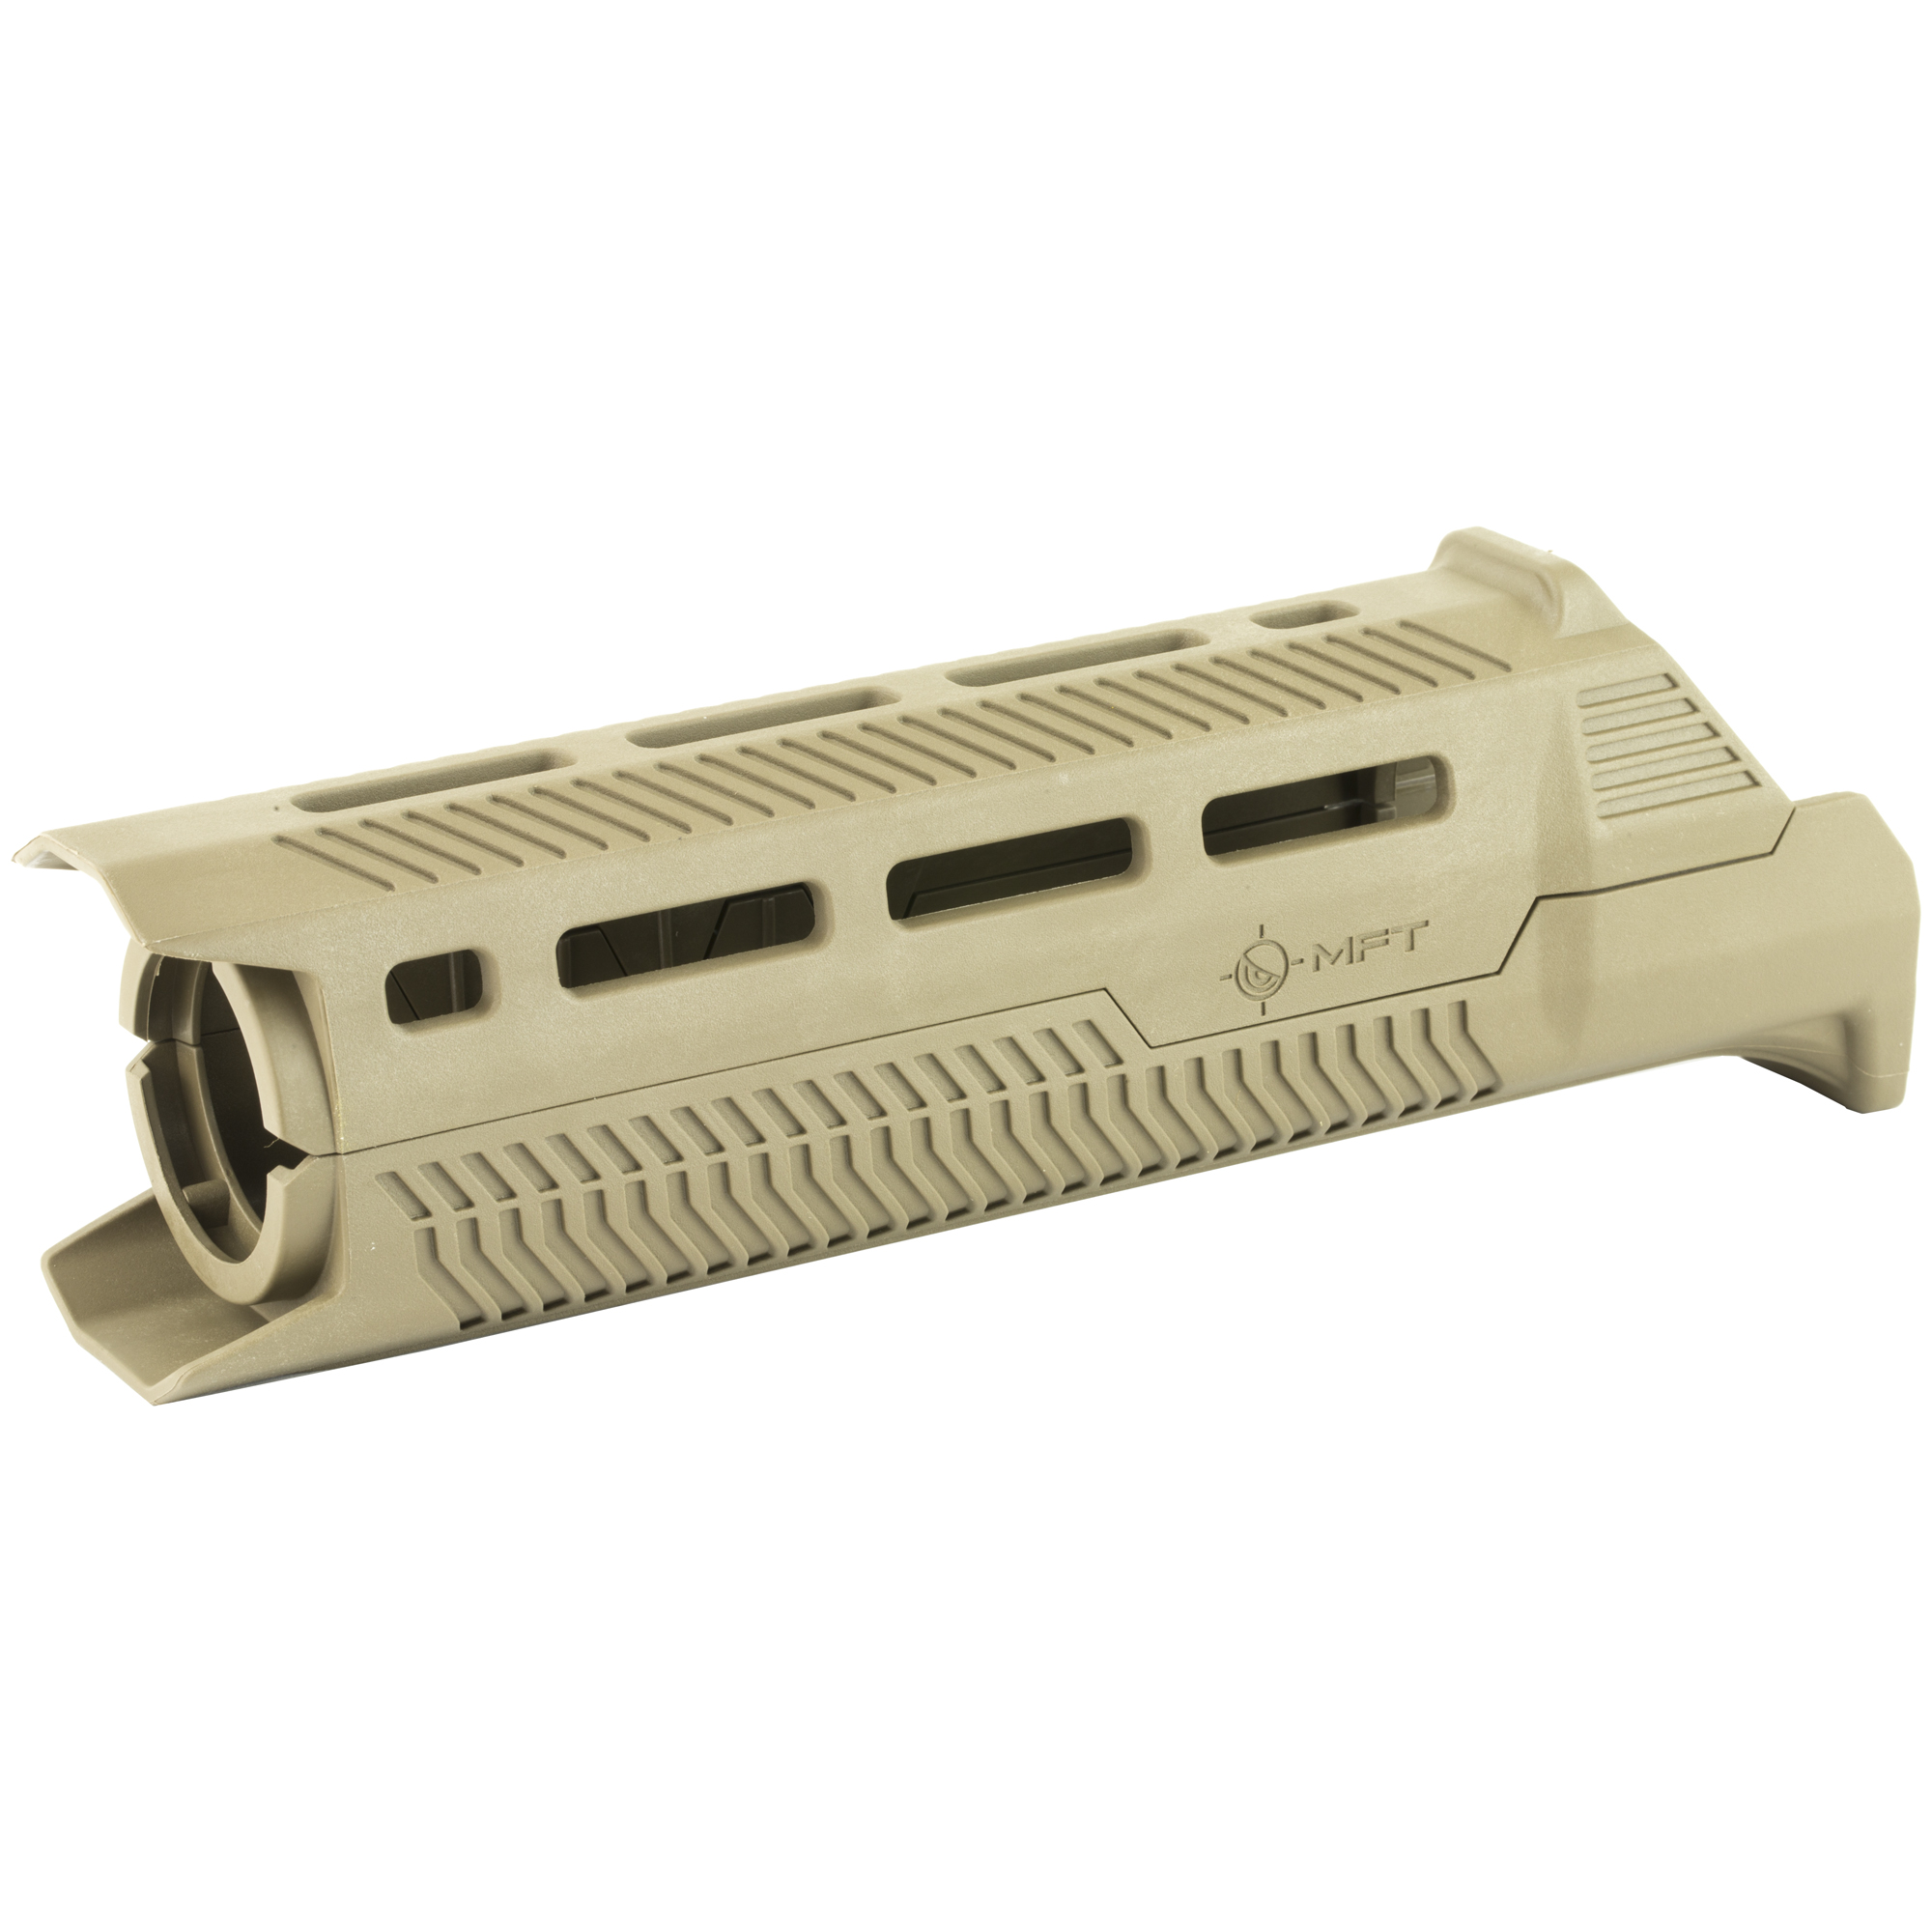 """The Tekko polymer 7"""" AR-15 carbine M-LOK rail system replaces the plastic factory handguard in minutes and requires no gunsmithing. No permanent alterations need to be made to the rifle its drop in screw less installation"""" the unit is held in place by the Delta ring and handguard cap. M-Lock(TM) provides a secure platform for mounting Picatinny rails and accessories such as vertical grips"""" lights"""" lasers"""" bipods and other rail mounted kit. One QD mount built in for right handed shooters"""" sorry lefties you'll have to buy the M-Lock(TM) QD accessory. A monolithic style continuous top rail eliminates the gap between the receiver and rail. MFT's proprietary polymer ensures heat and impact resistance"""" made in the USA"""" with a Lifetime Warranty."""